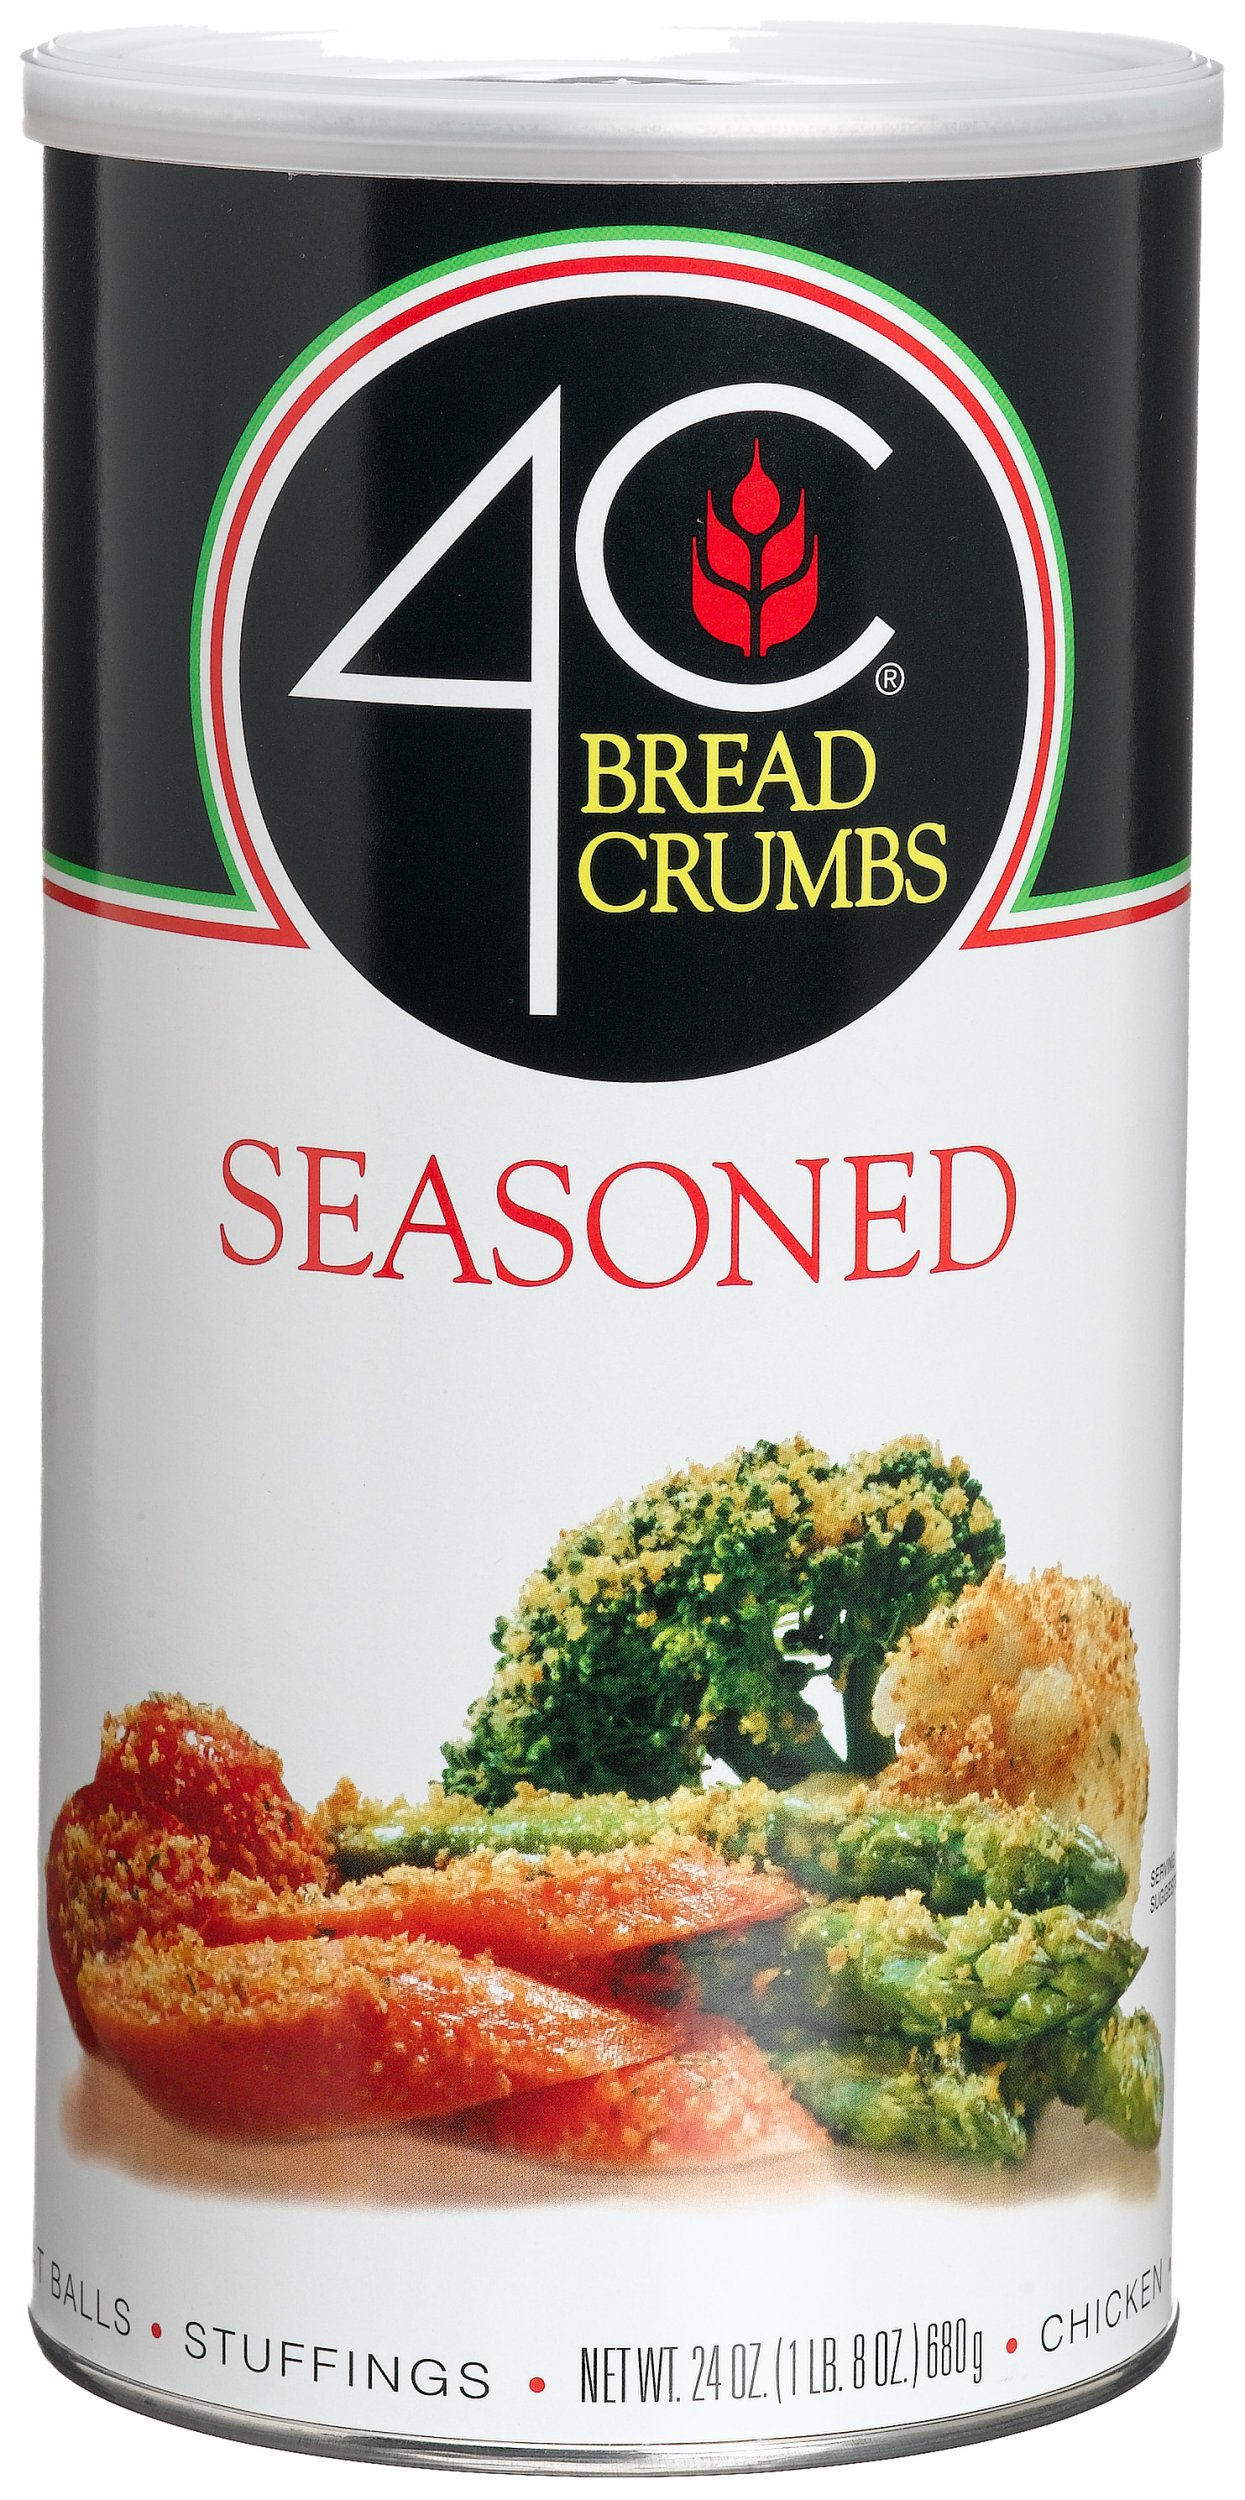 4C Seasoned Bread Crumbs, 24-Ounce Canisters (Pack of 6) by 4C (Image #1)